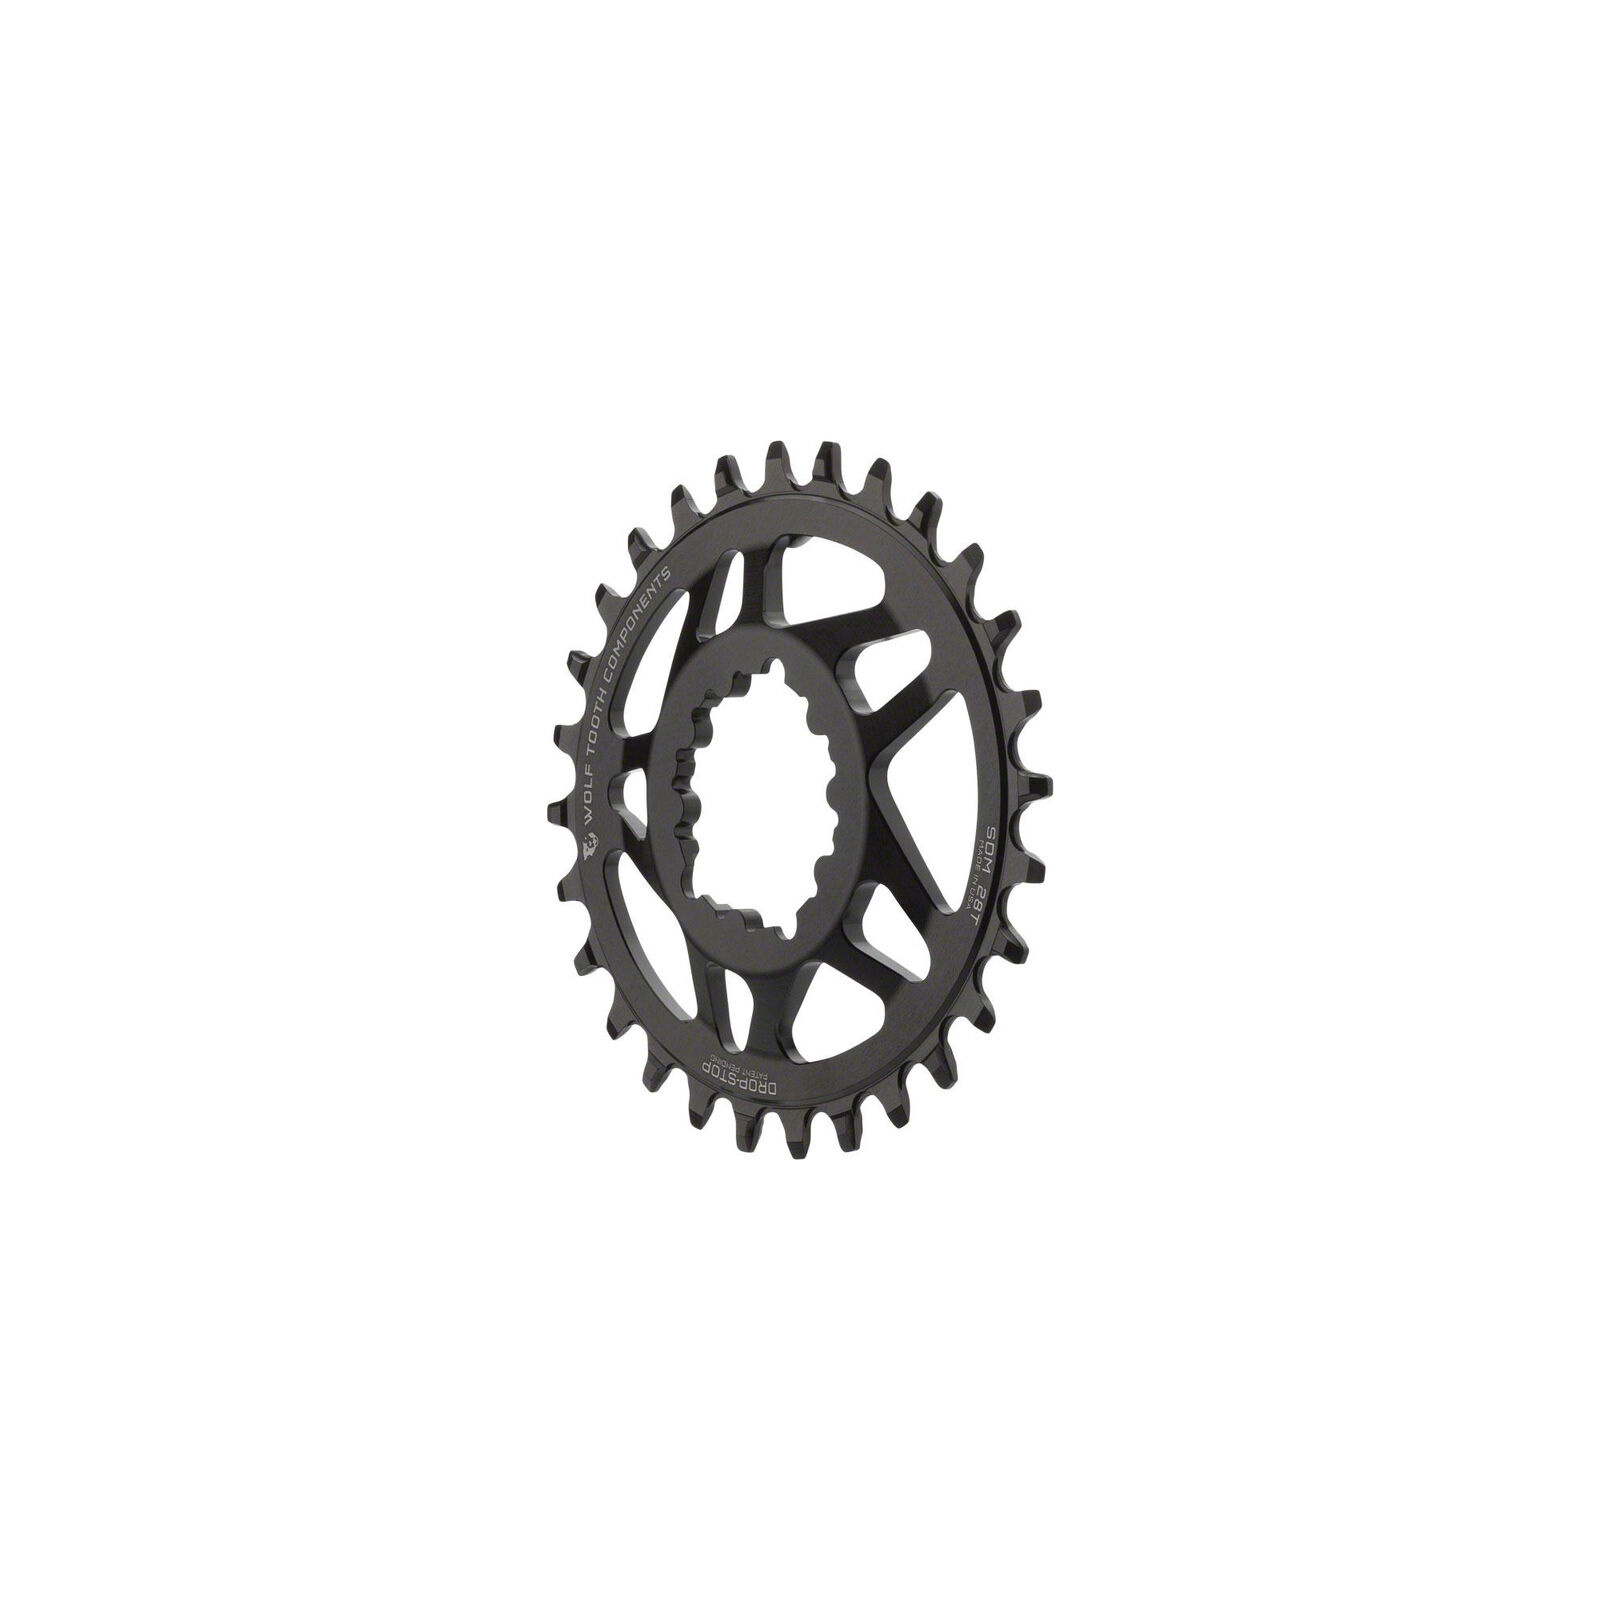 Wolf Tooth Components Drop-Stop PowerTrac DM 28t Chainring SRAM 6mm Offset